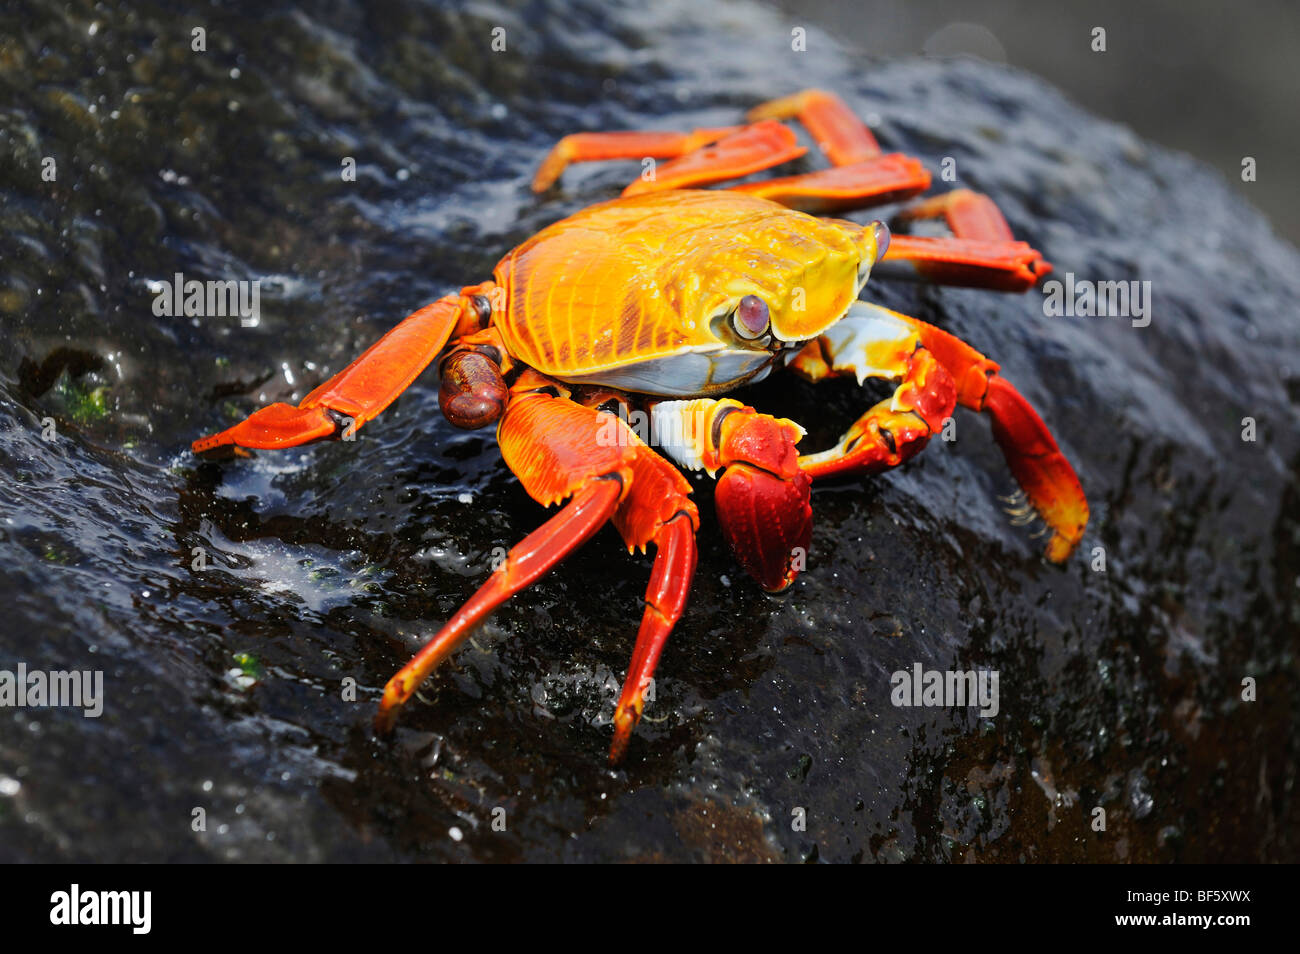 Sally Lightfoot Crab (Grapsus grapsus), adult, Espa ola Island, Galapagos, Ecuador, South America - Stock Image